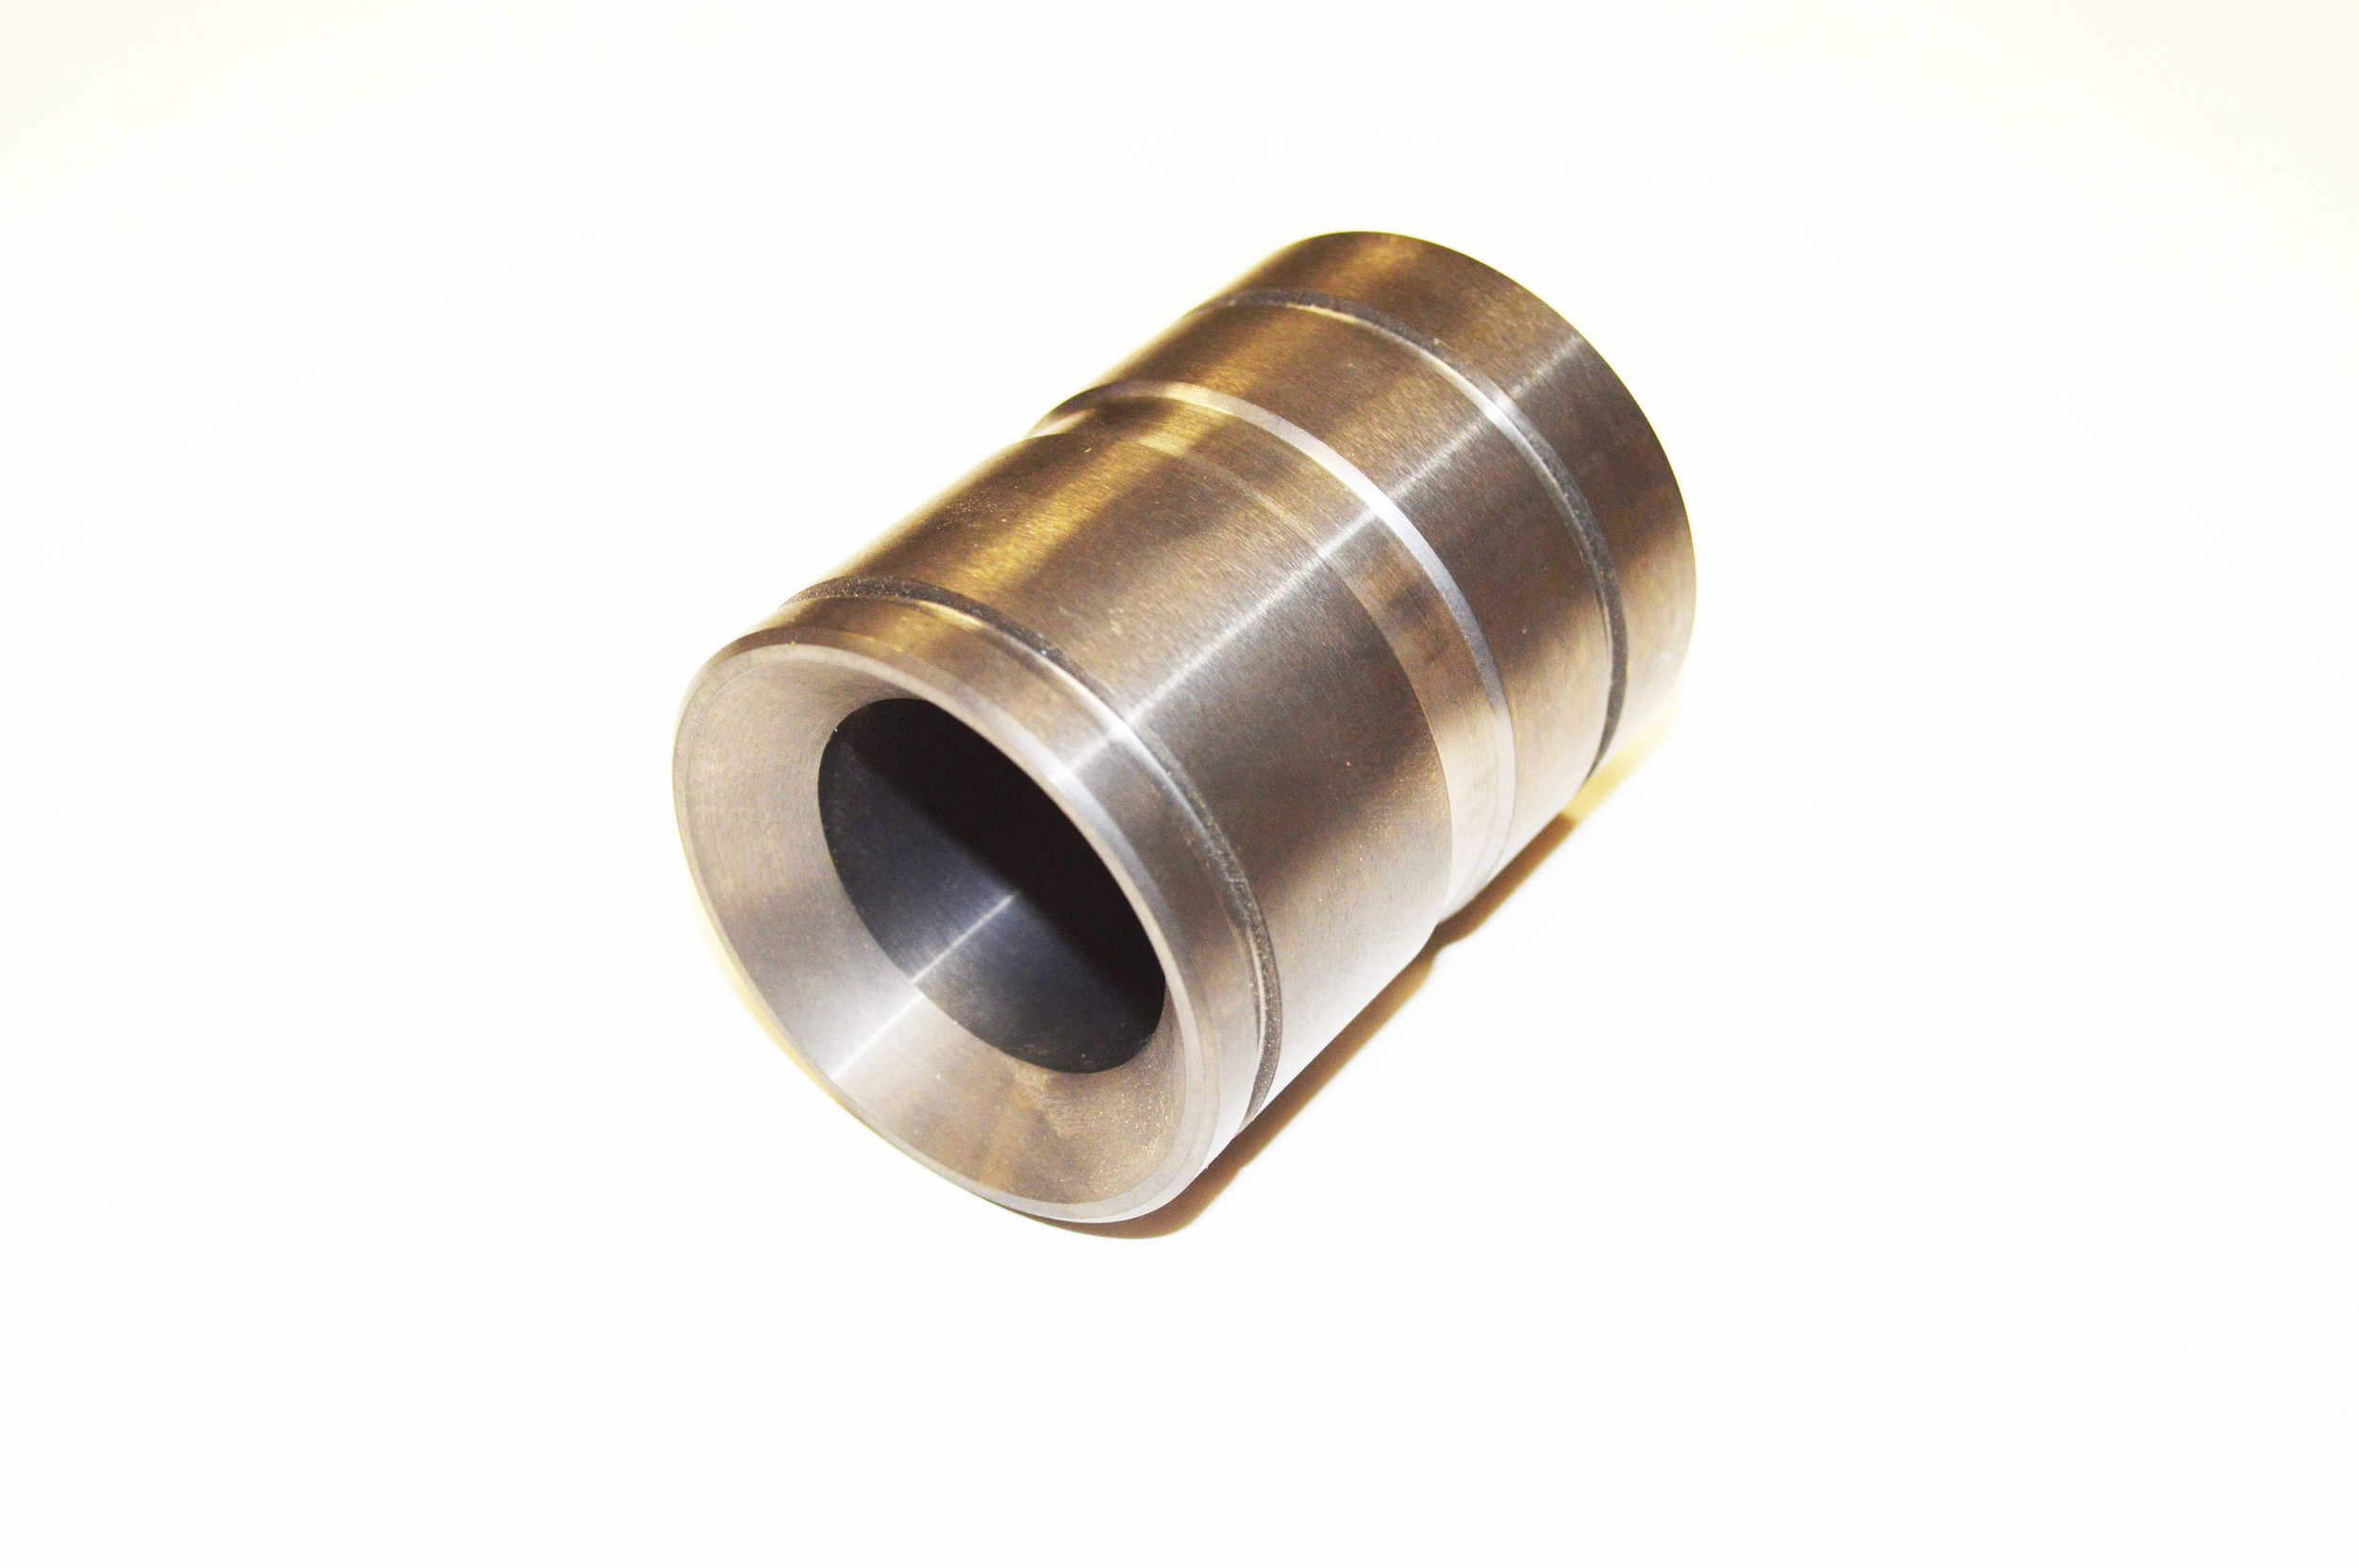 "Carbide Bottom Sleeve                    (All in One)              1.28"" : SMS-2451              1.35"" : SMS-2452              1.40"" : SMS-2453              1.50"" : SMS-2454              1.60"" : SMS-2456"